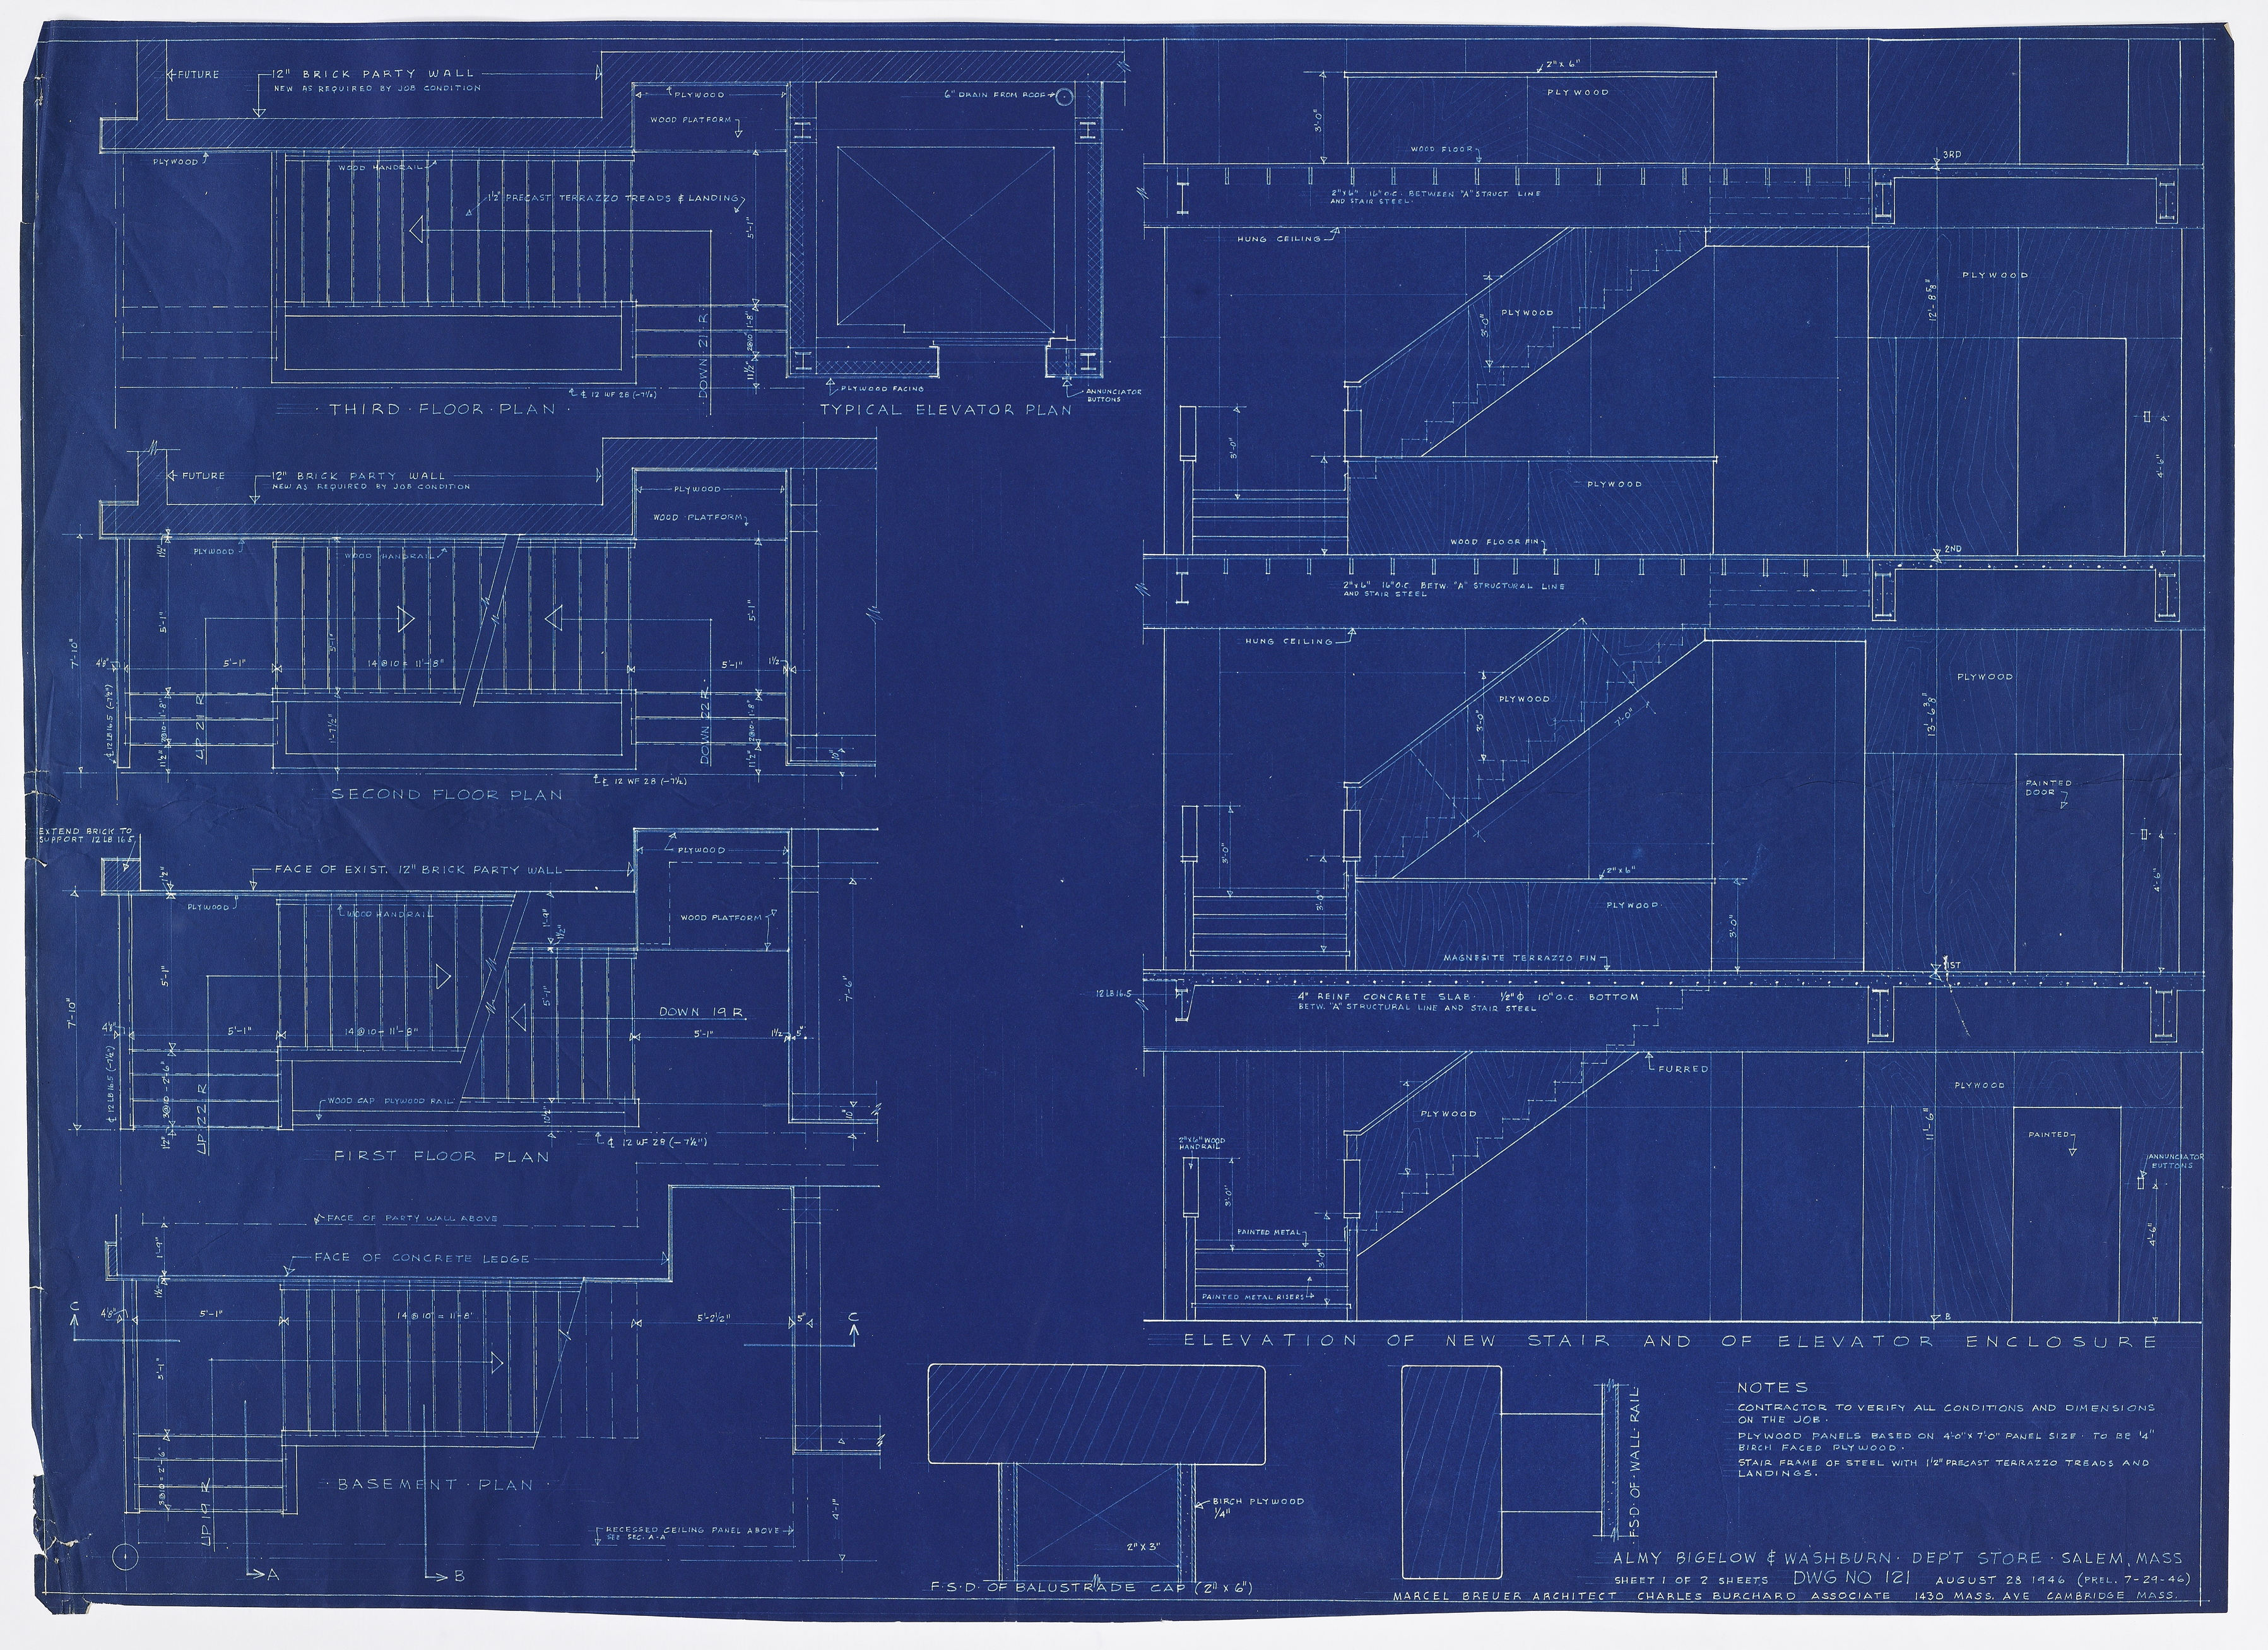 Click to show Elevation of New Stair and of Elevator Enclosure (Dwg. No. 121) 5